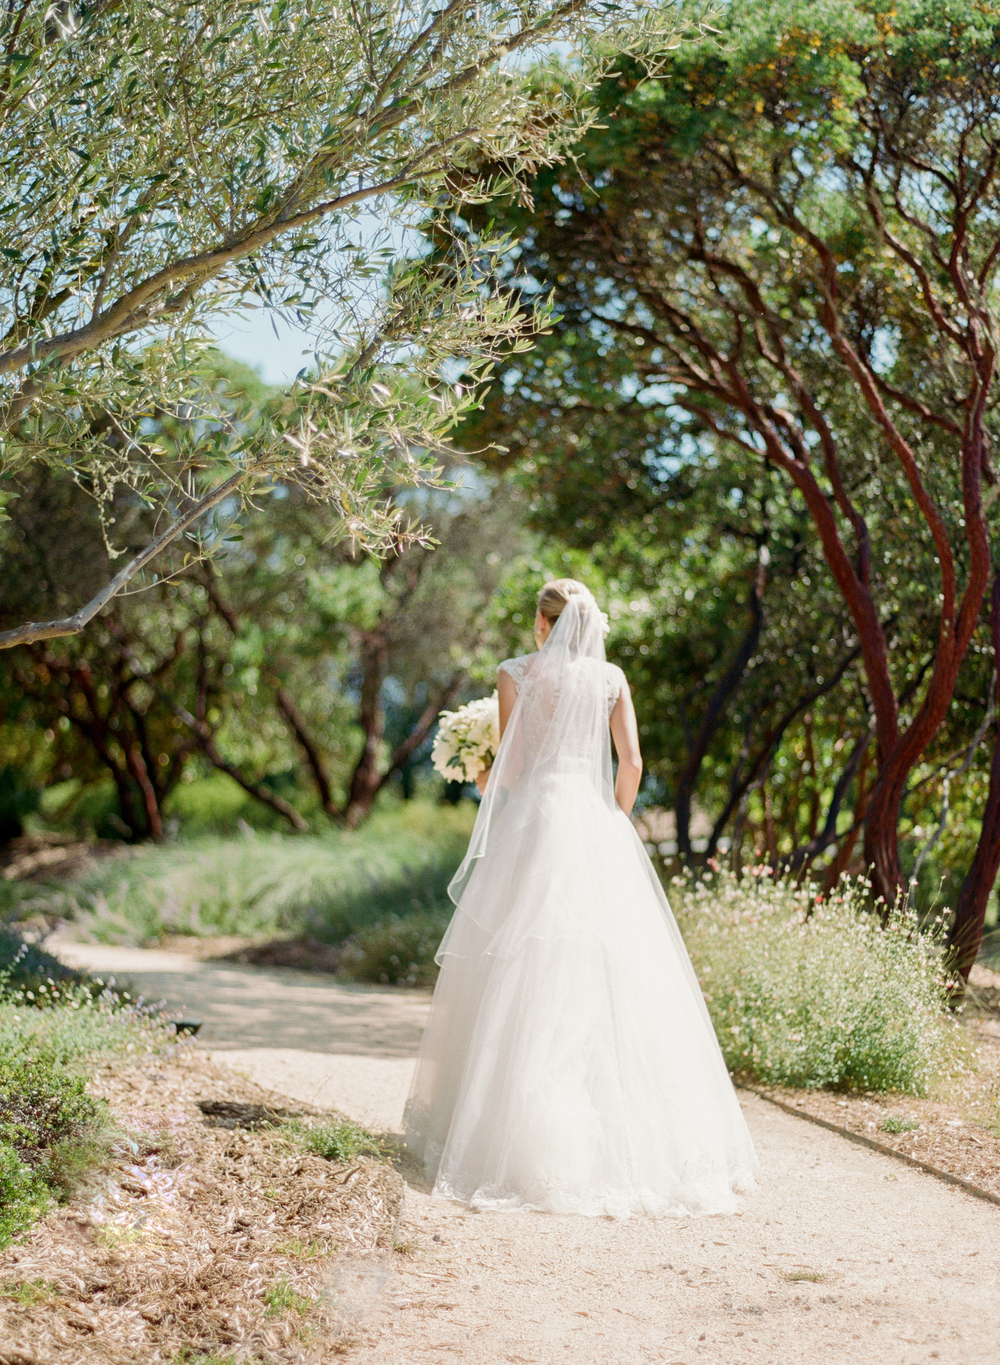 Caroline walks through an olive grove in her Monique Lhuillier lace gown toward her groom for a first look; photo by Sylvie Gil